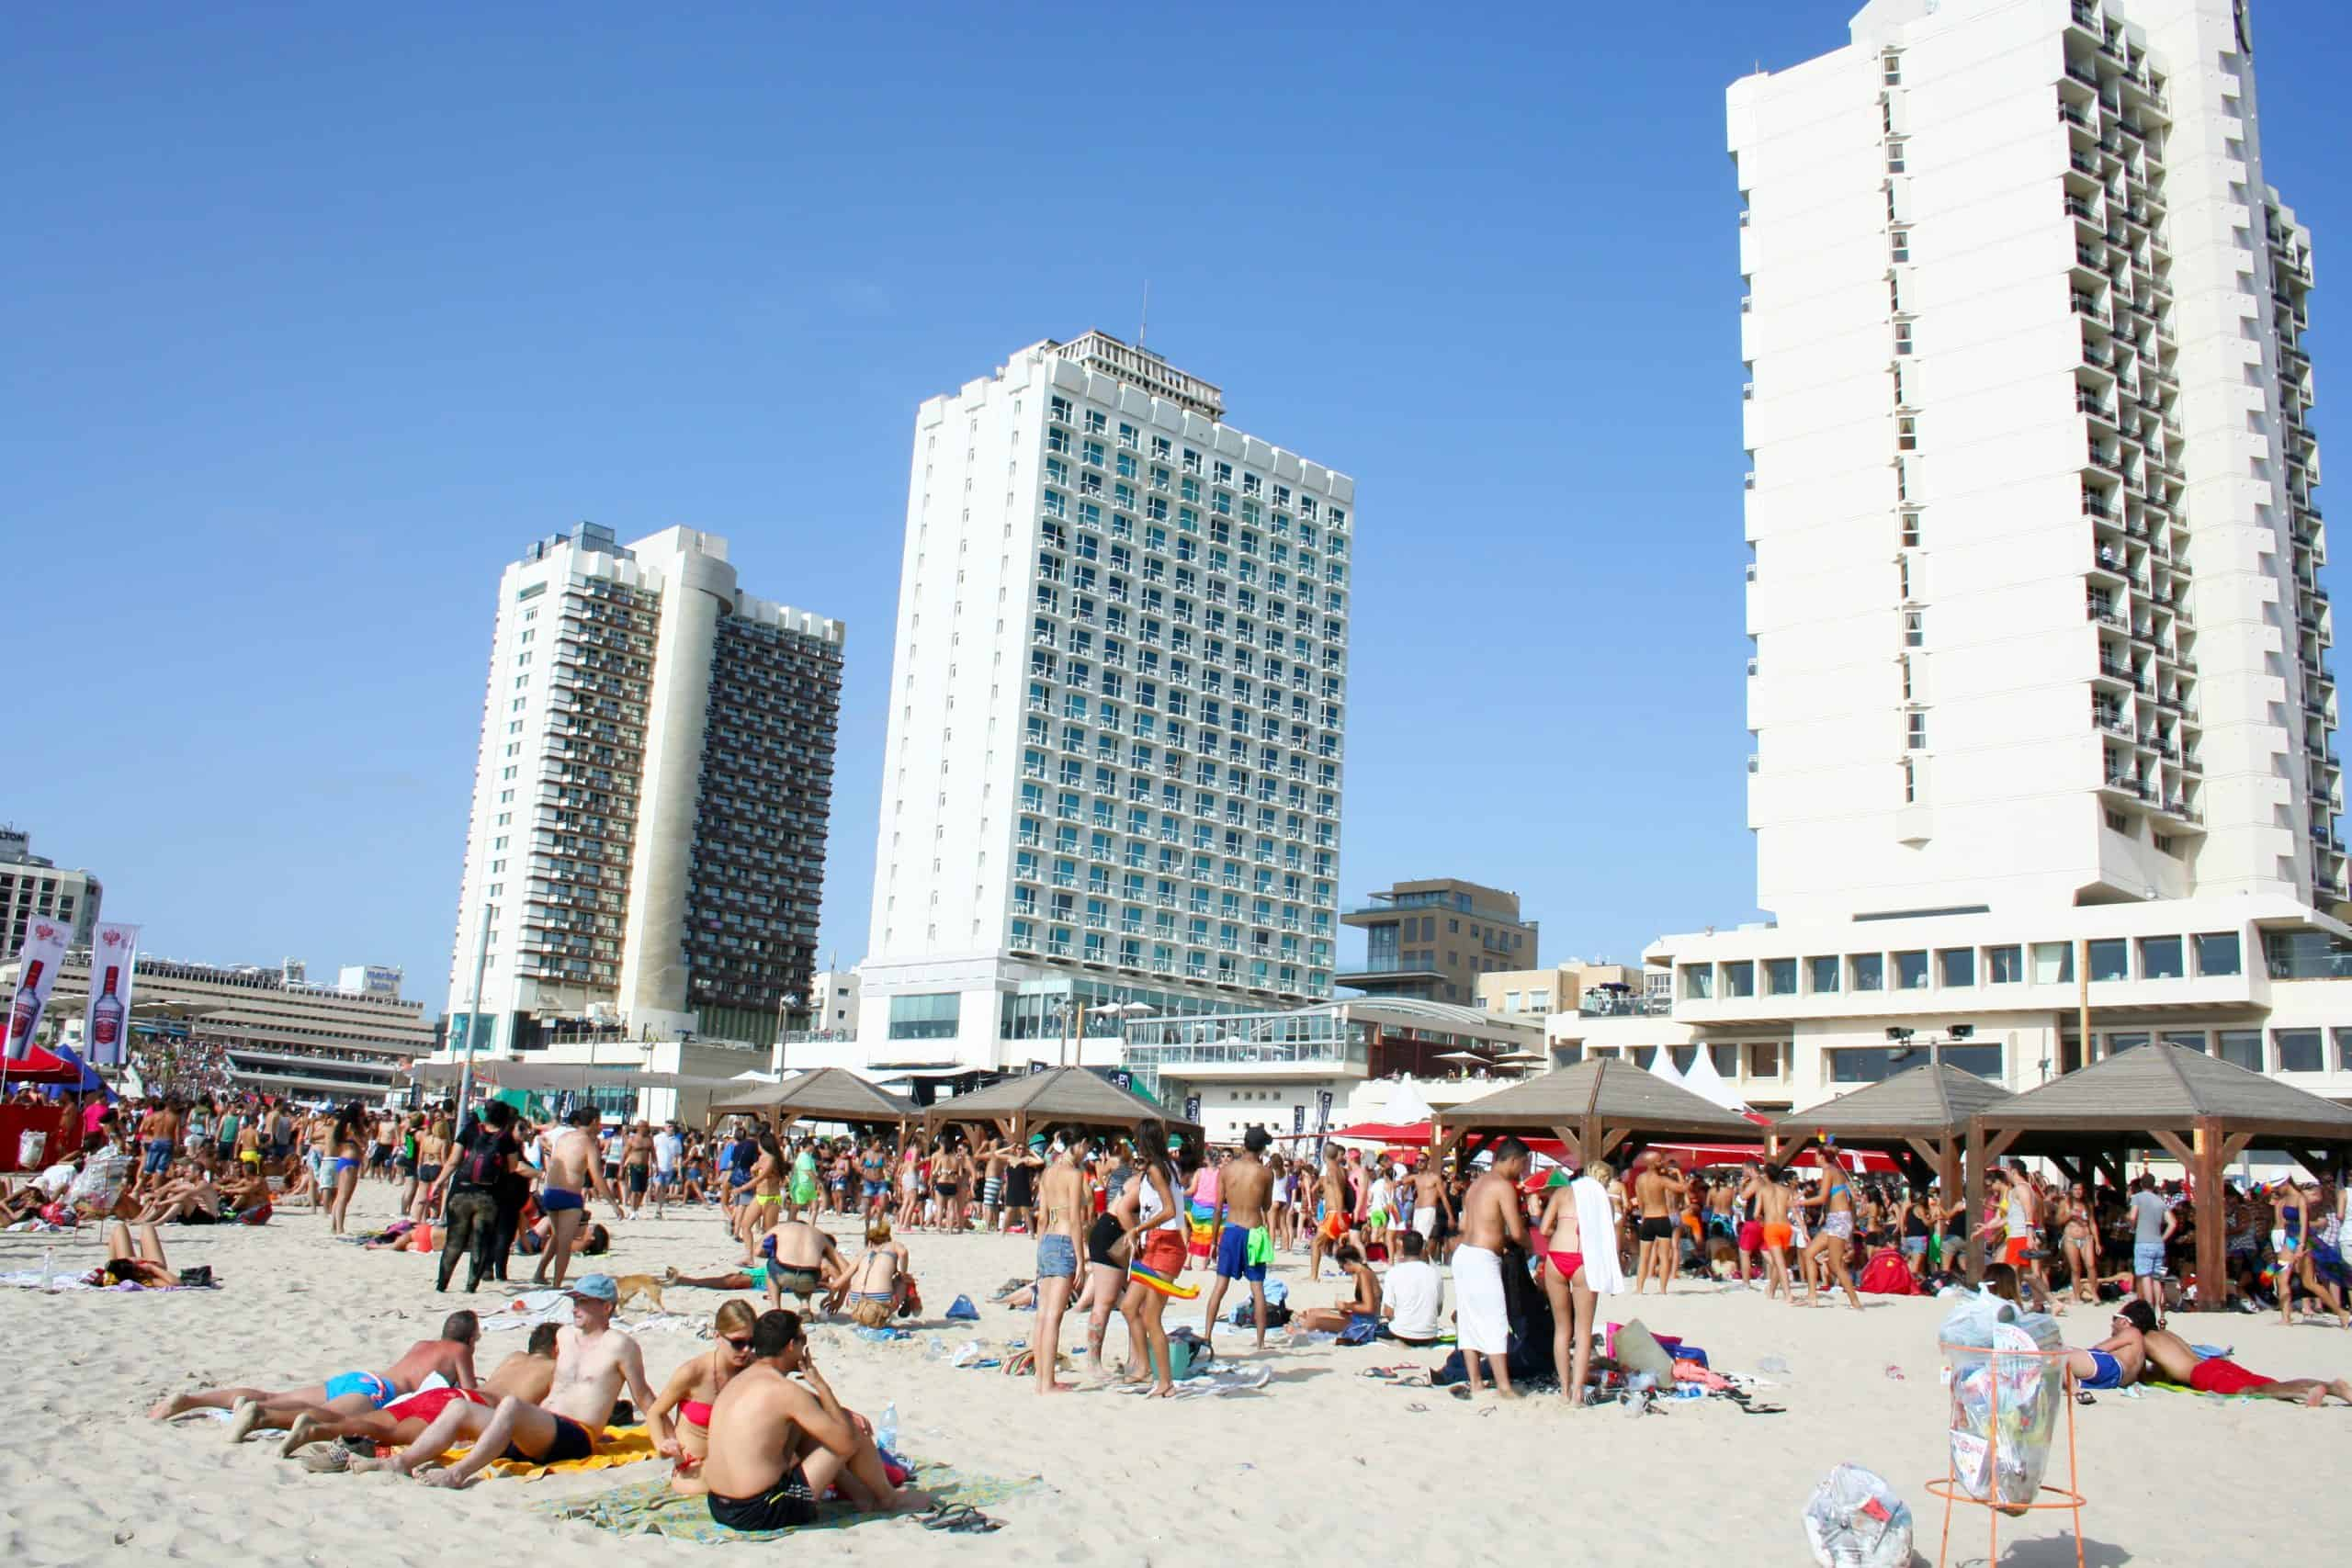 The Beach of Tel Aviv, Israel - one of the best places to visit in Israel